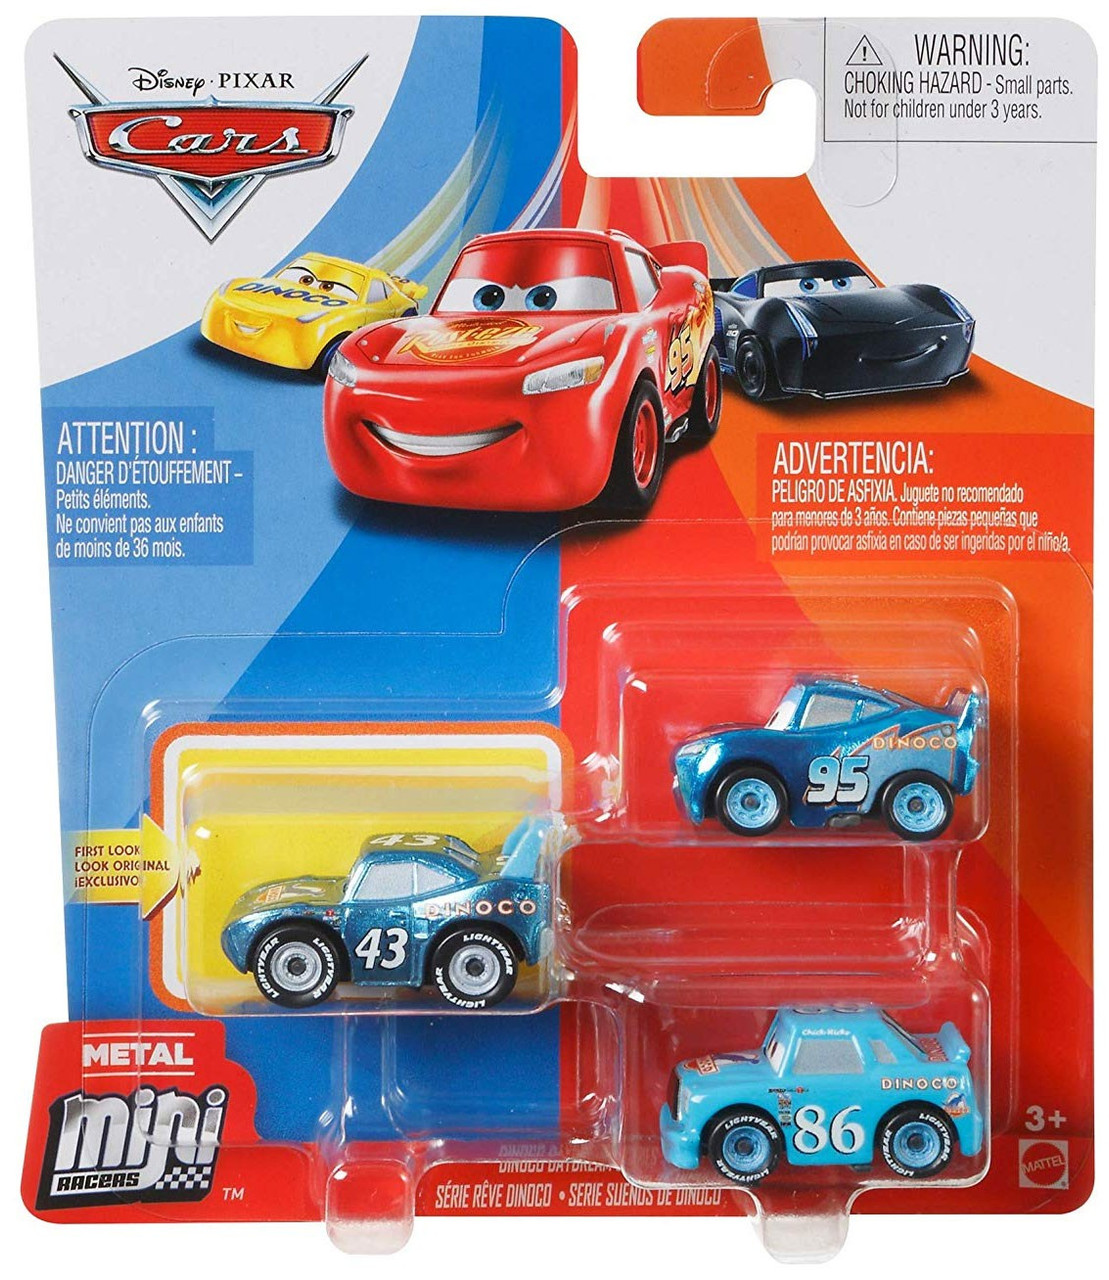 Disney Pixar Cars Die Cast Metal Mini Racers Dinoco Daydream Car 3